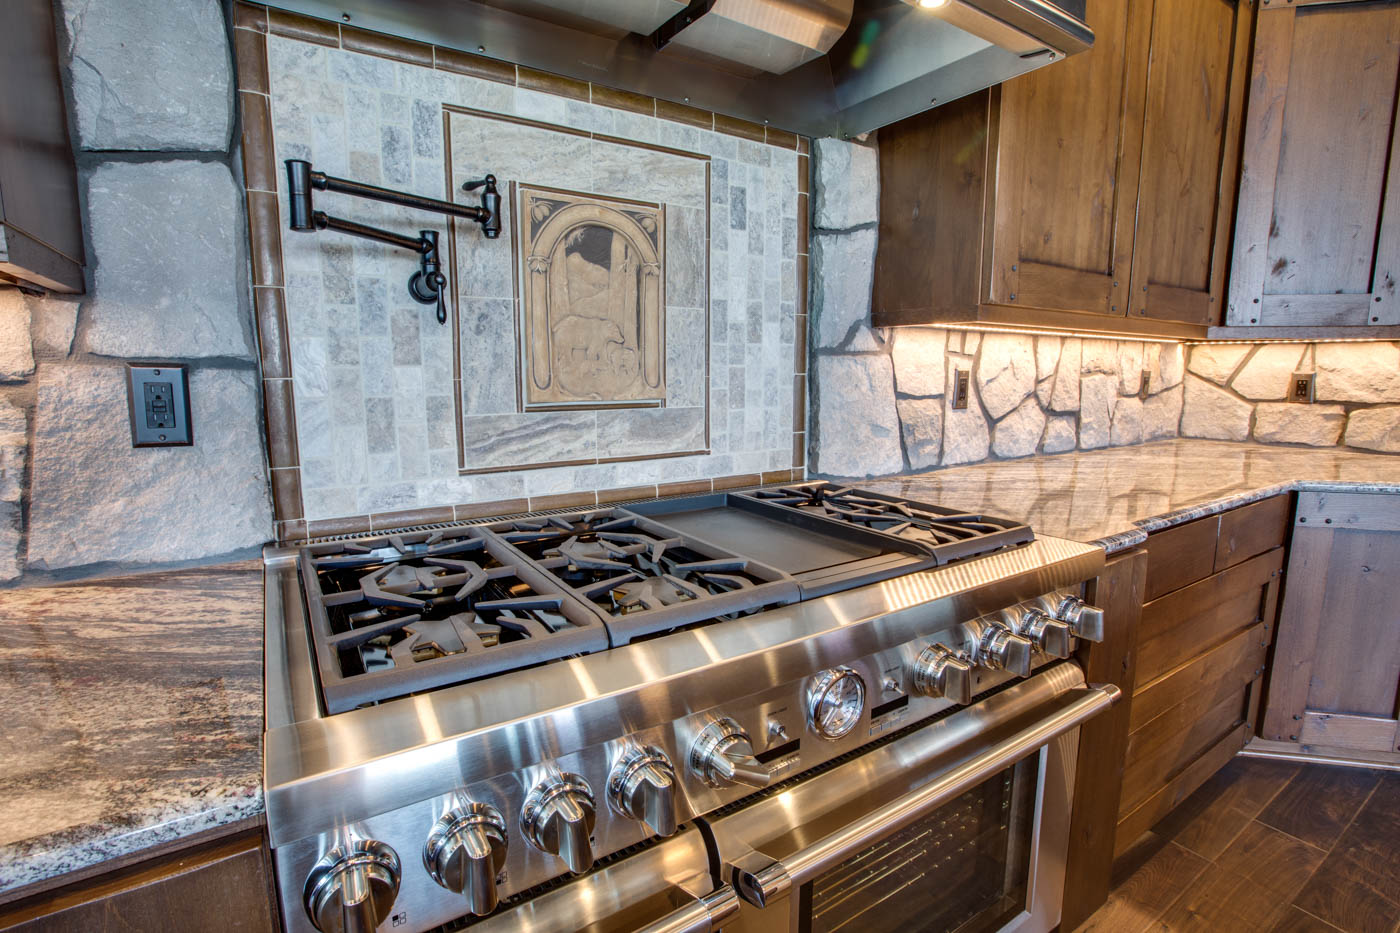 kitchen_stove_18010-s-ramsby-rd_084_webres